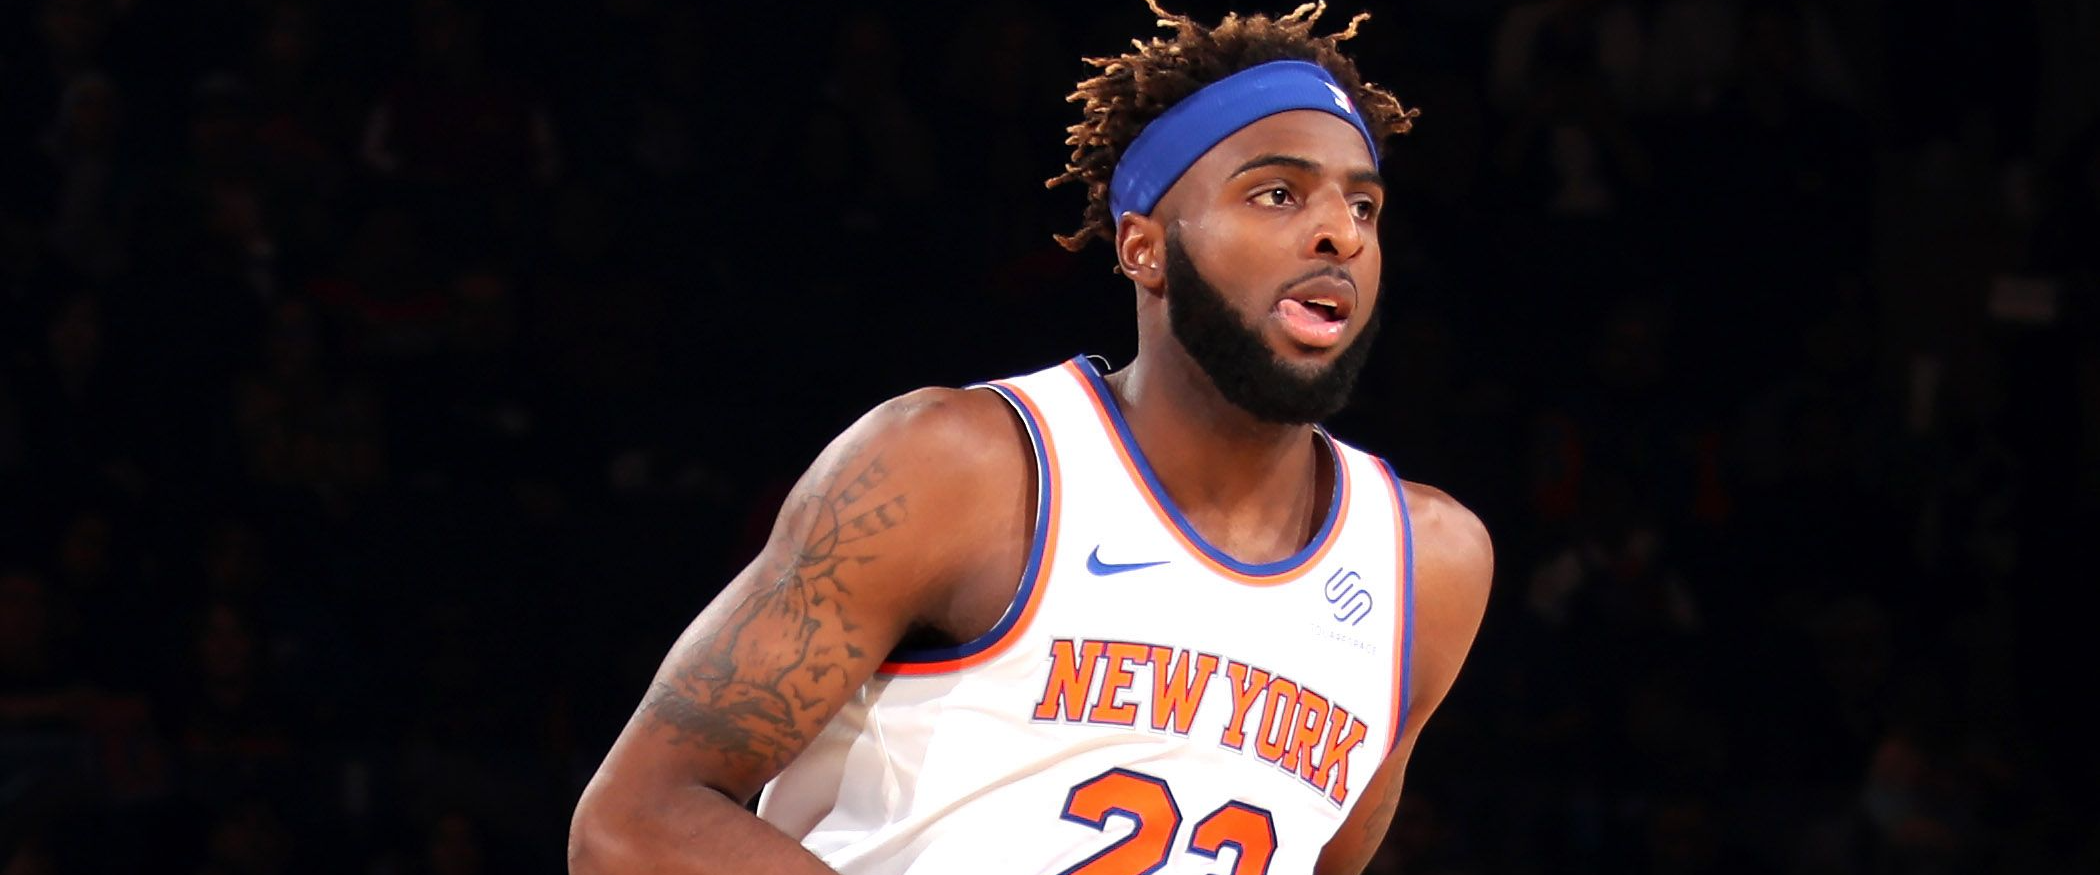 New York Knicks Fall to Pistons in Second Preseason Game